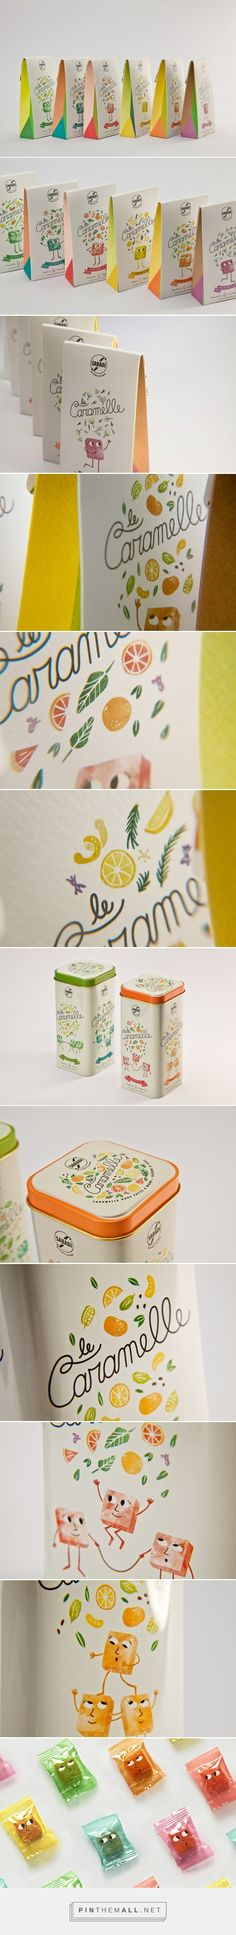 Sabadì – Le Caramelle candies packaging by Happycentro